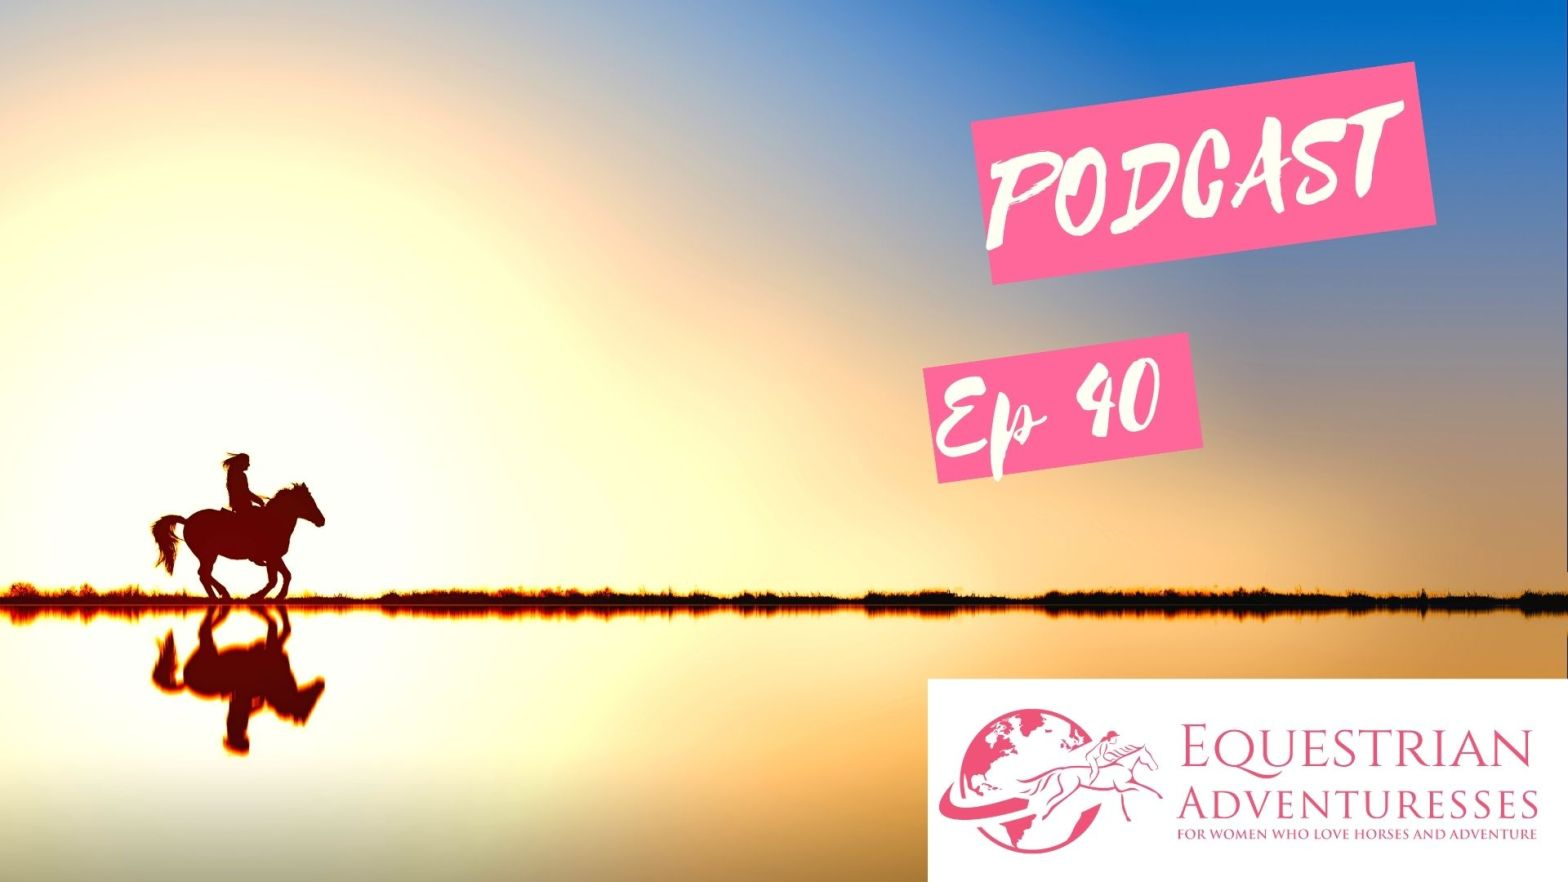 Equestrian Adventuresses Travel and Horse Podcast Ep 40 - Summer Dreaming on Horses and Rides